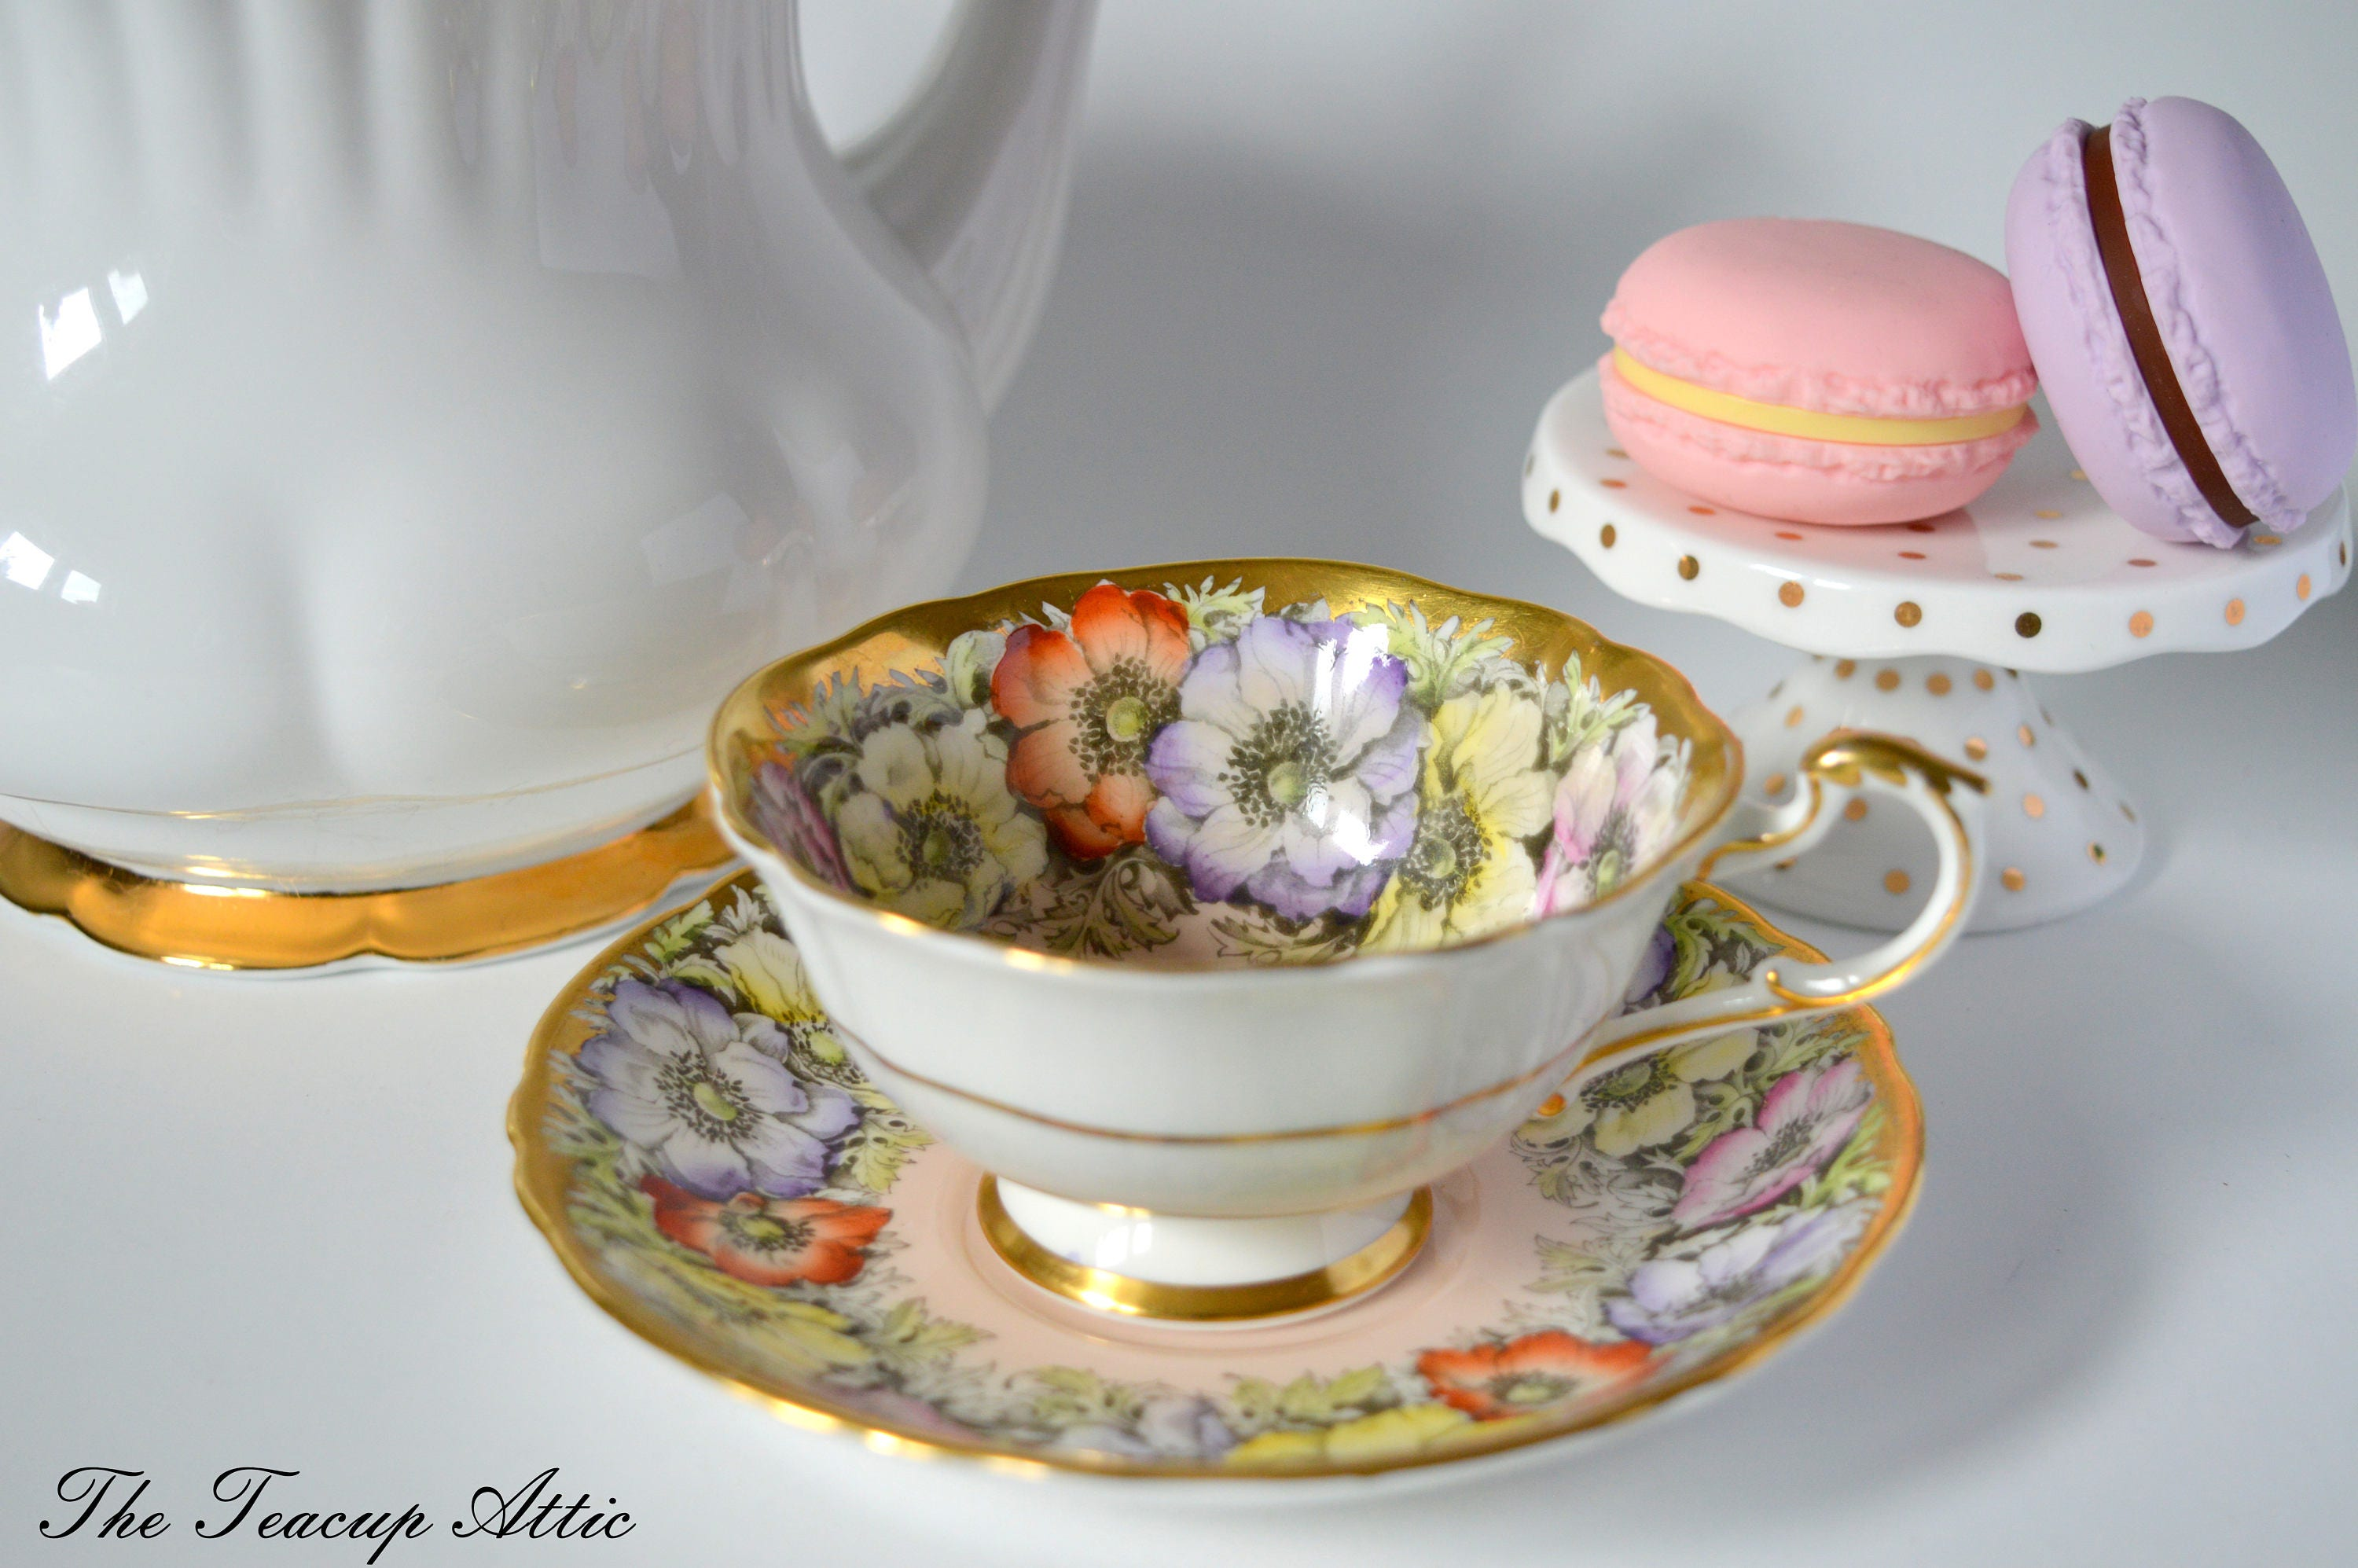 Paragon Floral Teacup and Saucer Set With Amemone Flowers and Heavy Gold Trim, Bone China Cabinet Tea Cup Set , ca. 1960-1963